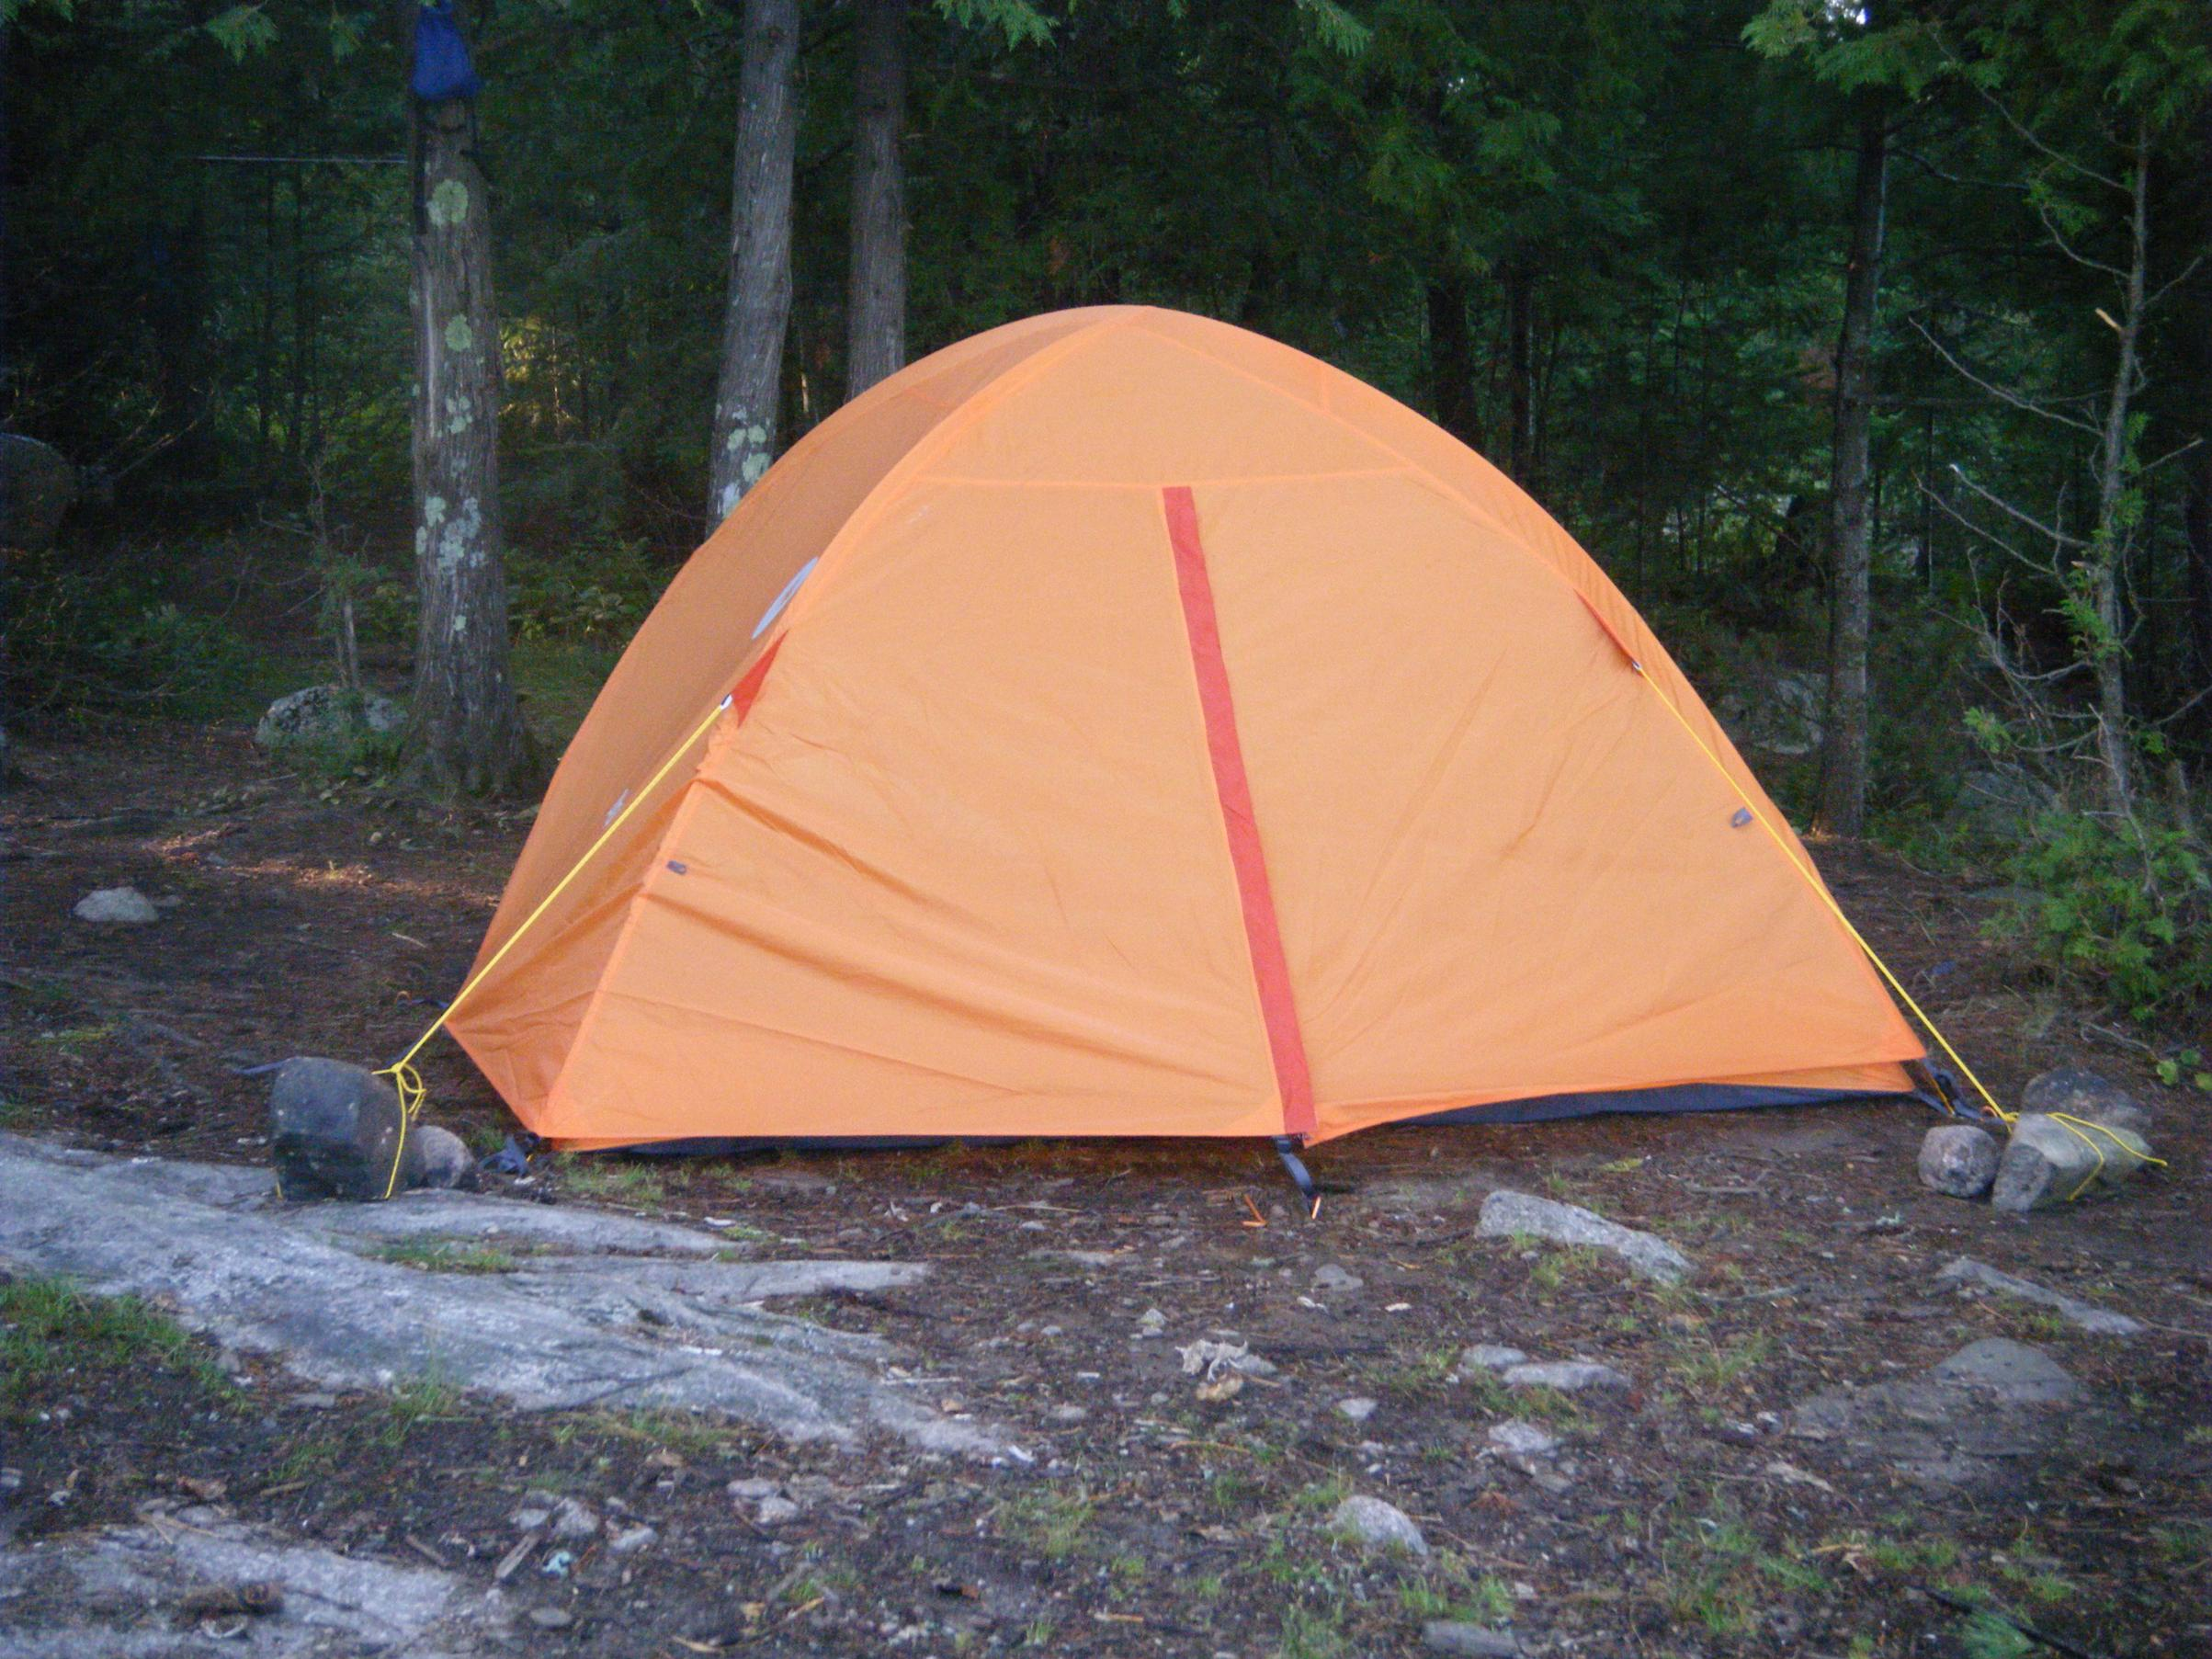 I have 4 tents each serves a different purpose. Theyu0027re all good tents but this Marmot 4-person tent I bought last summer is my new favorite. & BWCA My Best Tent Boundary Waters Gear Forum